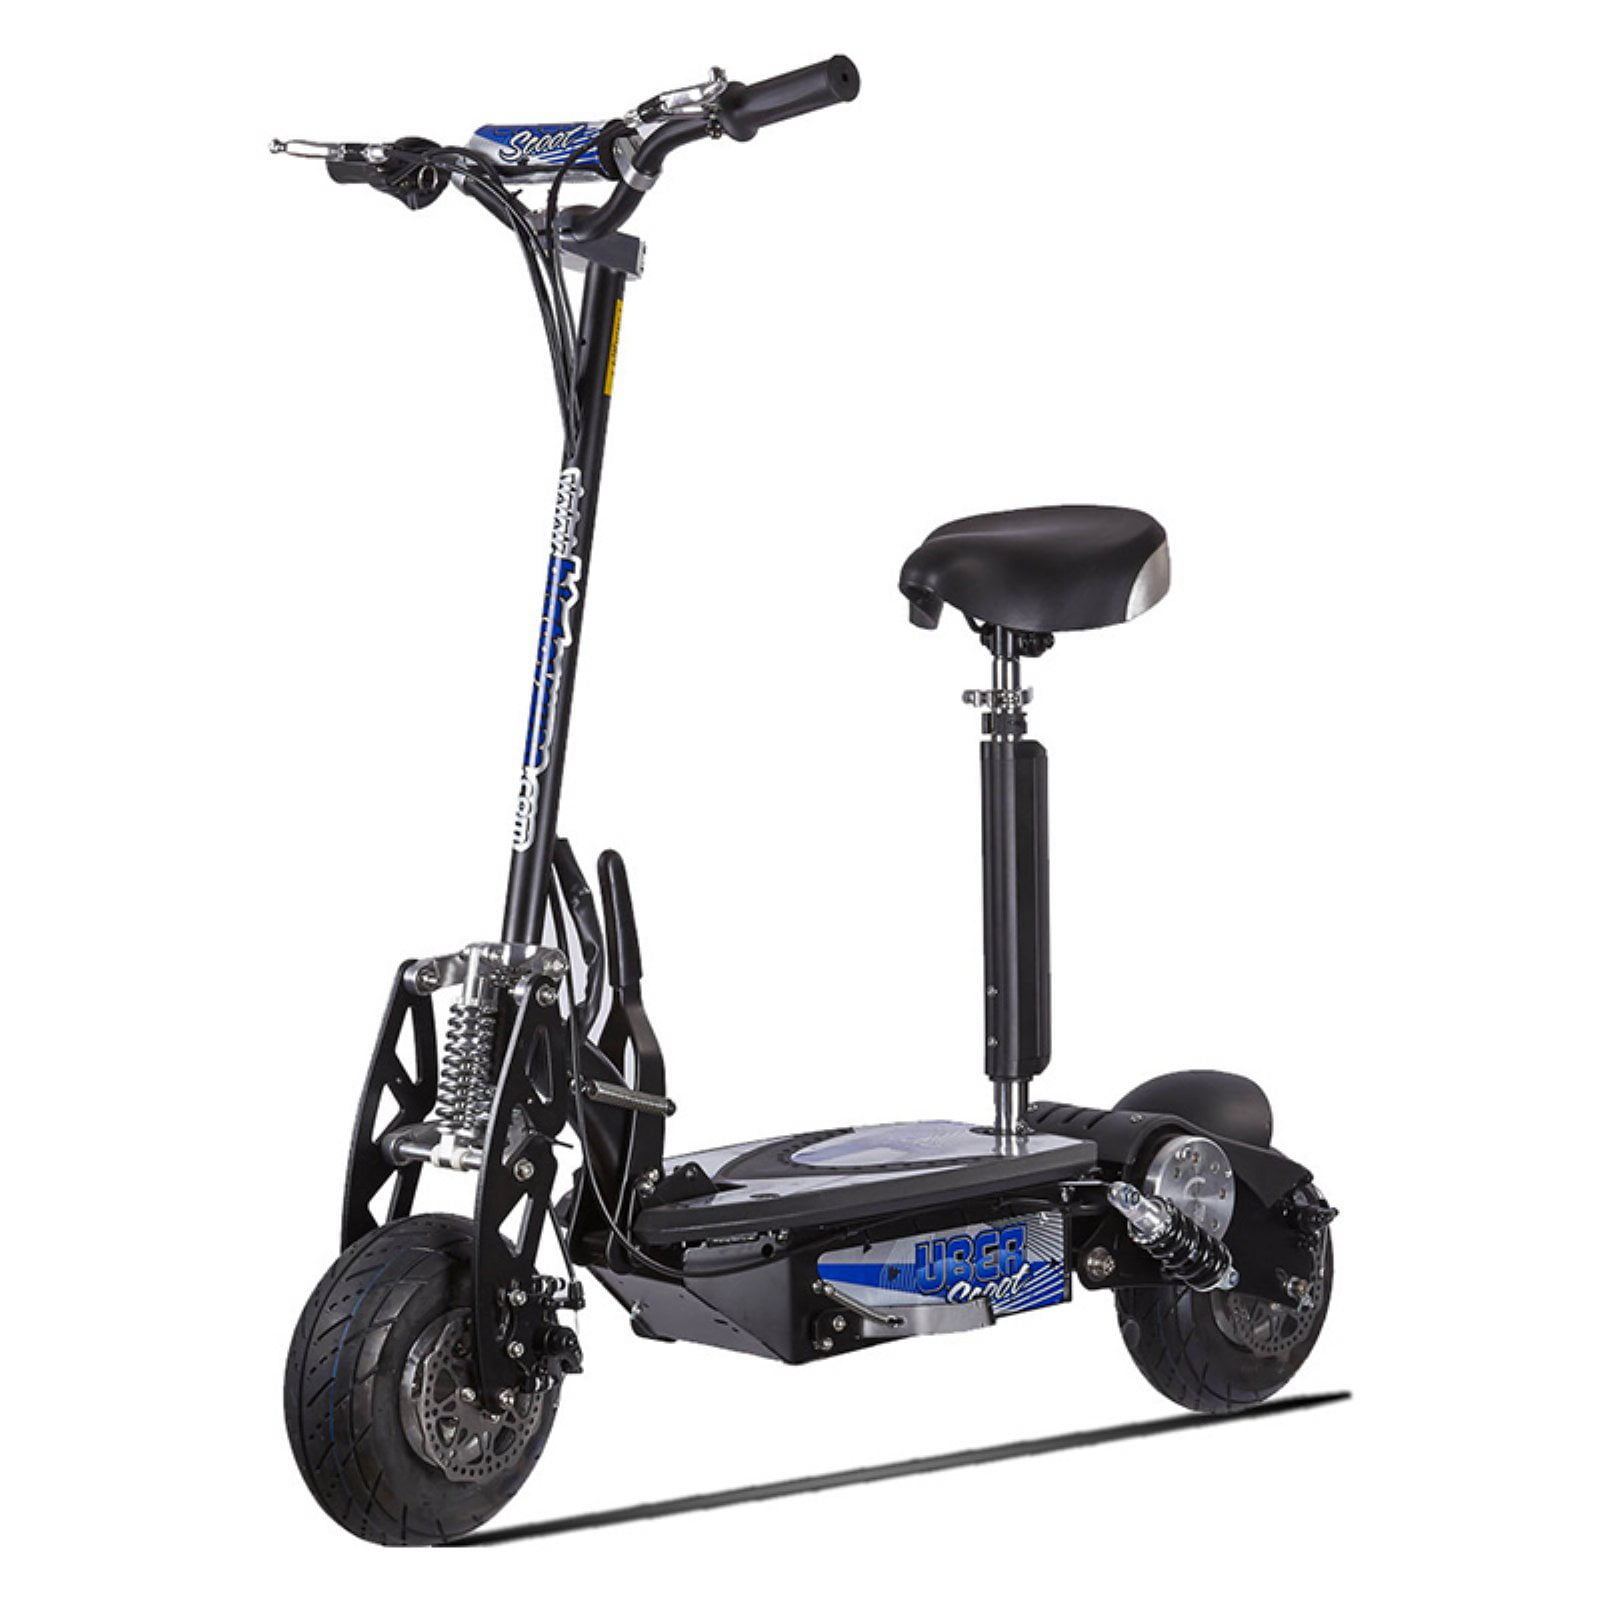 Stand Up Electric Scooter >> Uberscoot 1000w 36v Stand Up Electric Scooter With Seat Walmart Com